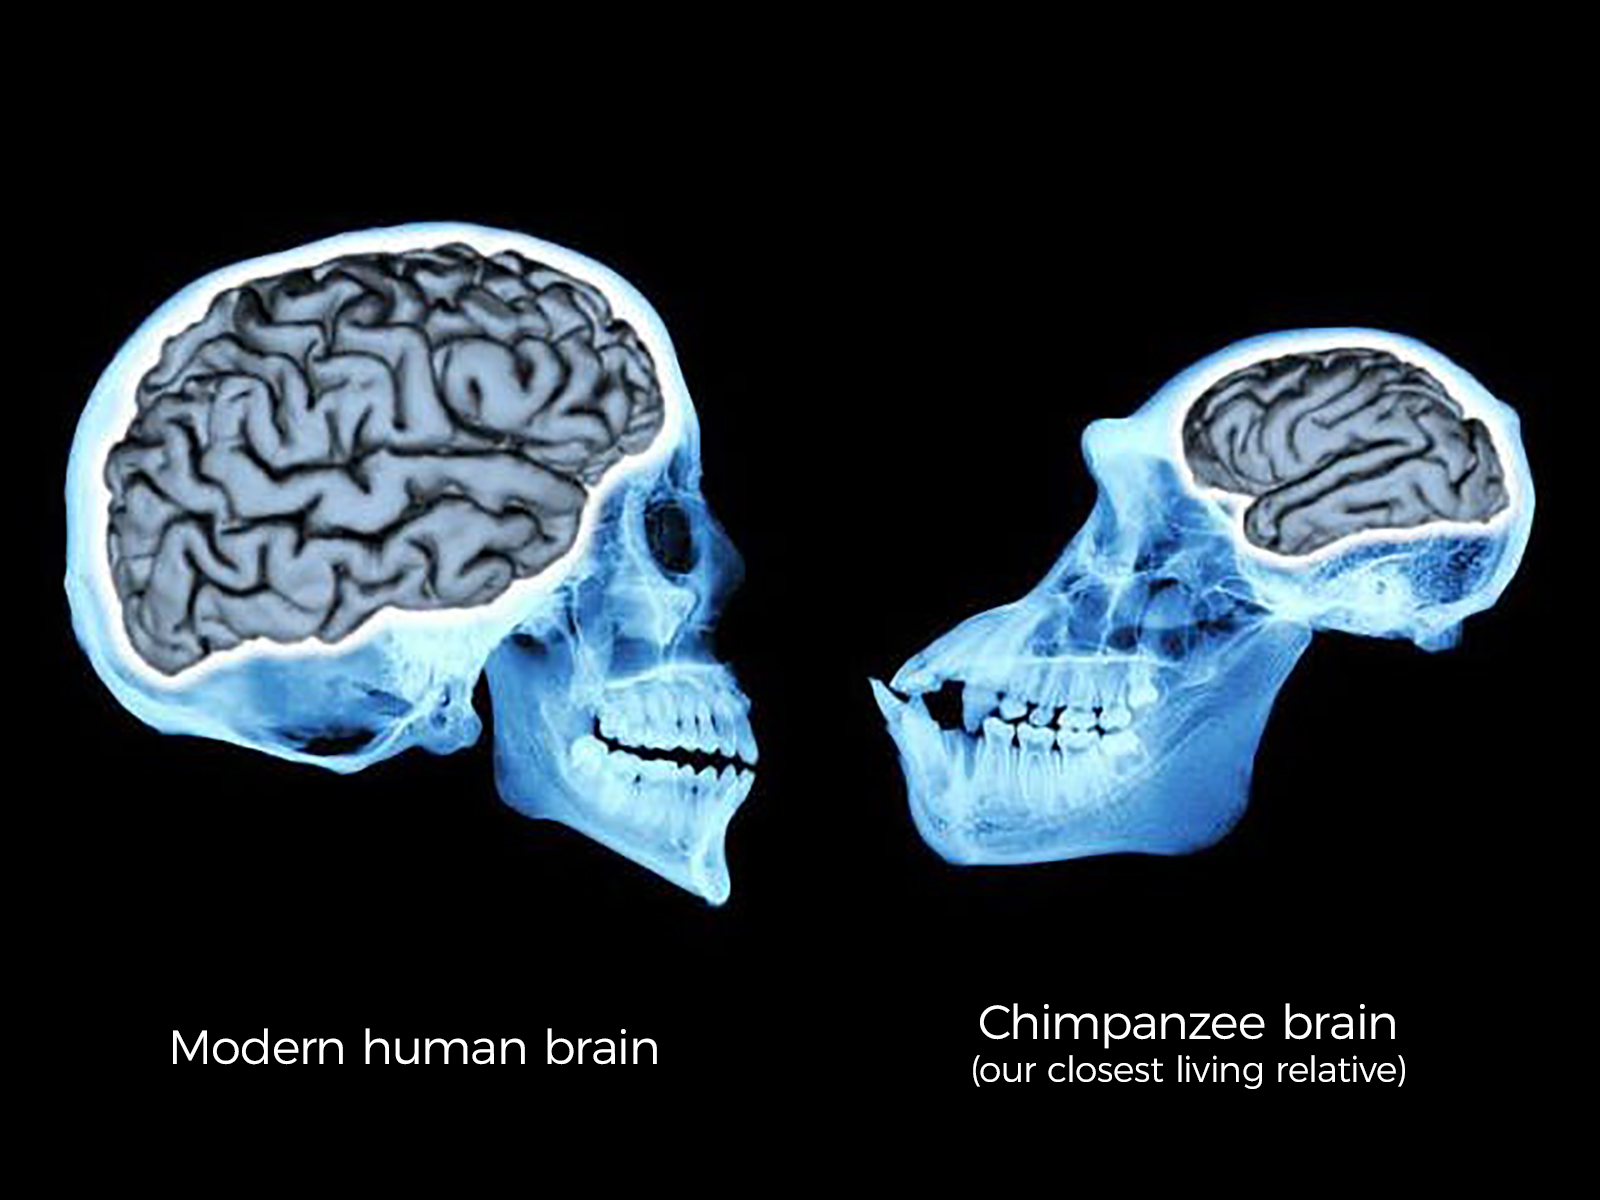 Human and Chimp Brains